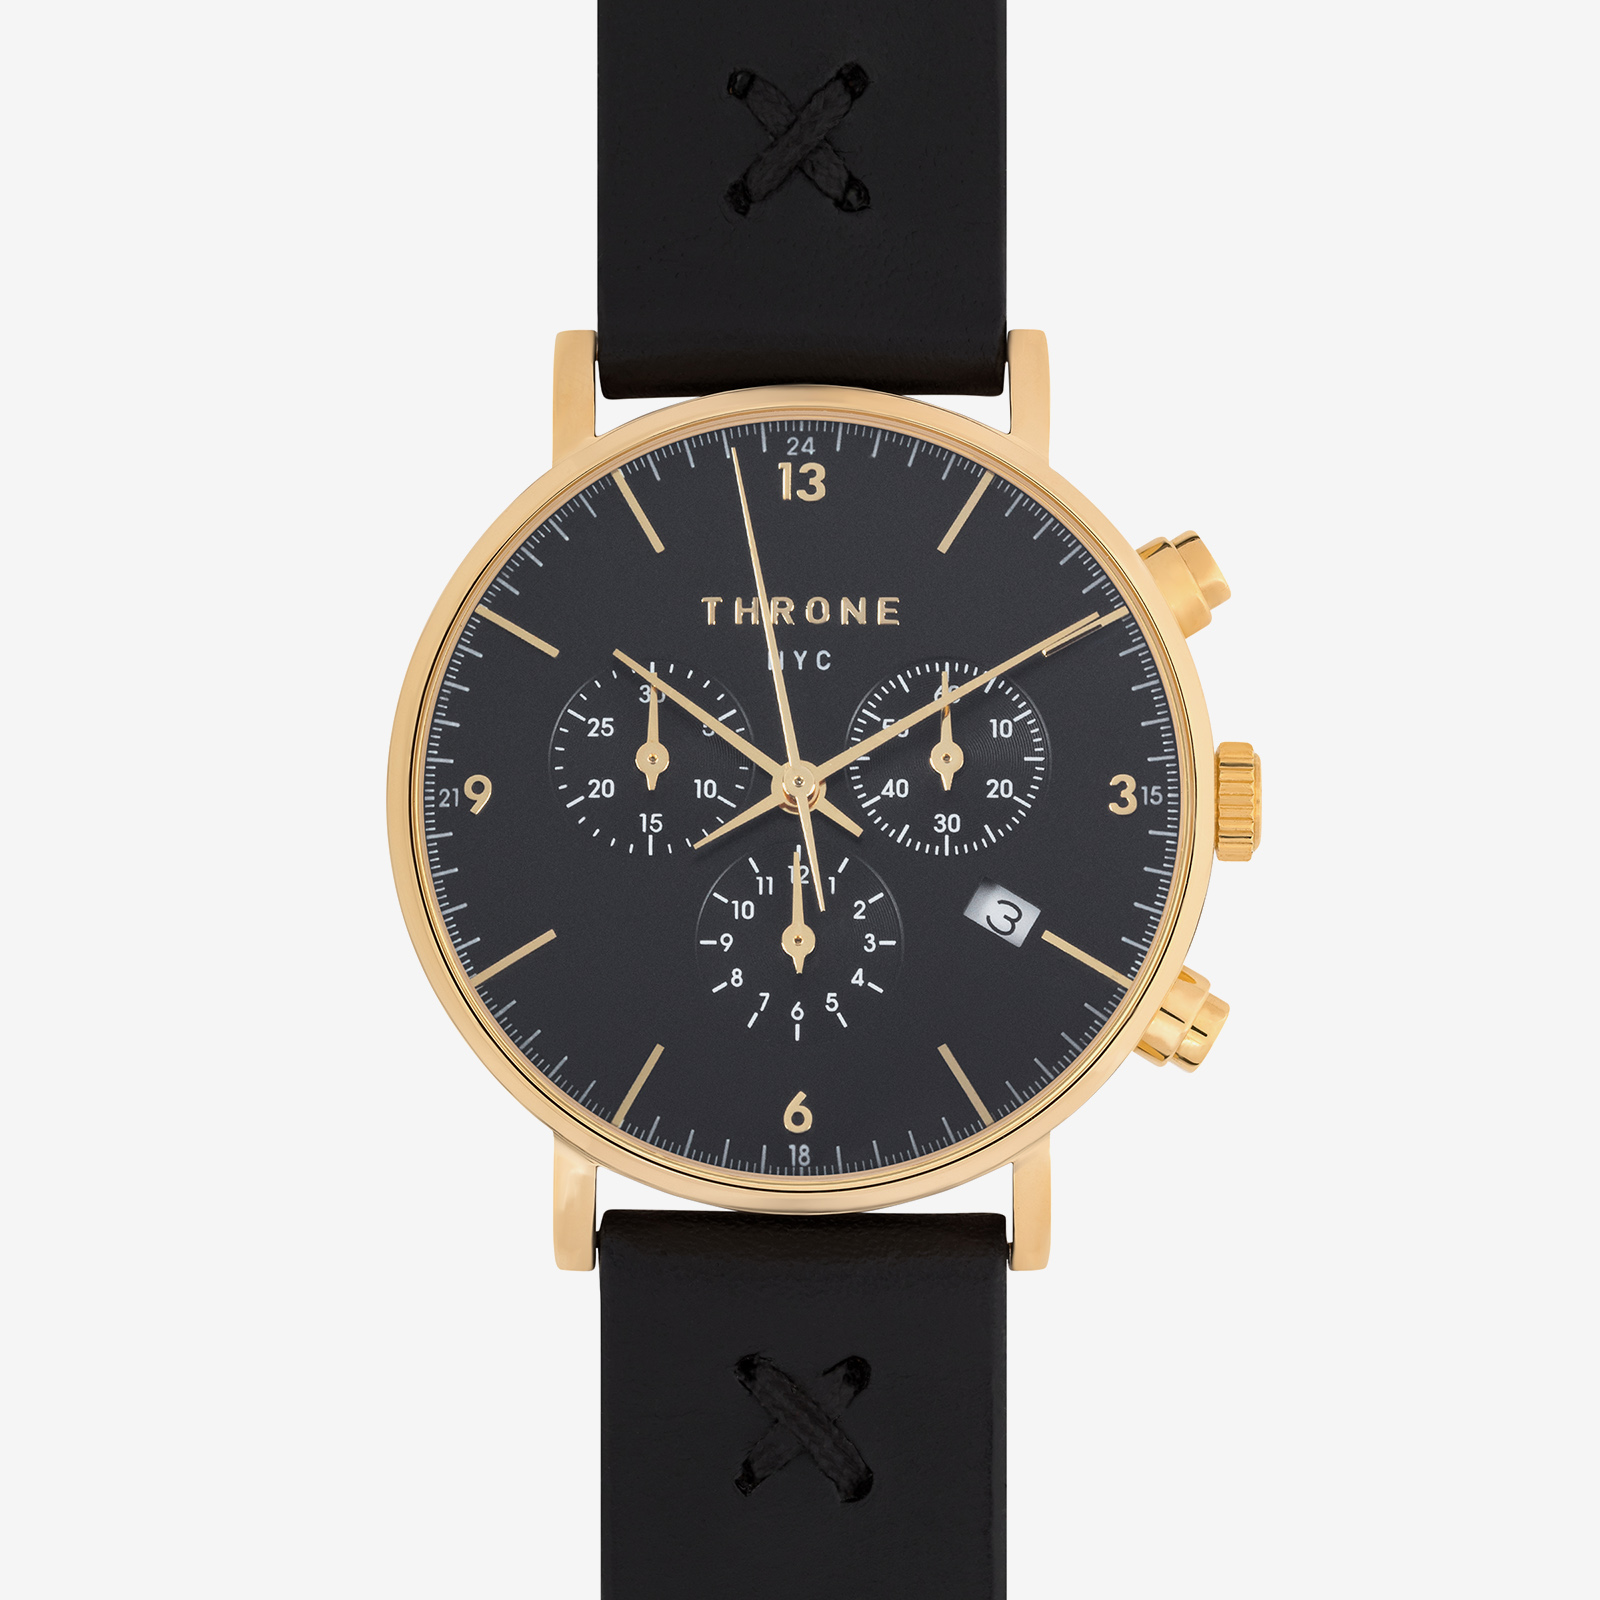 Watch product picture